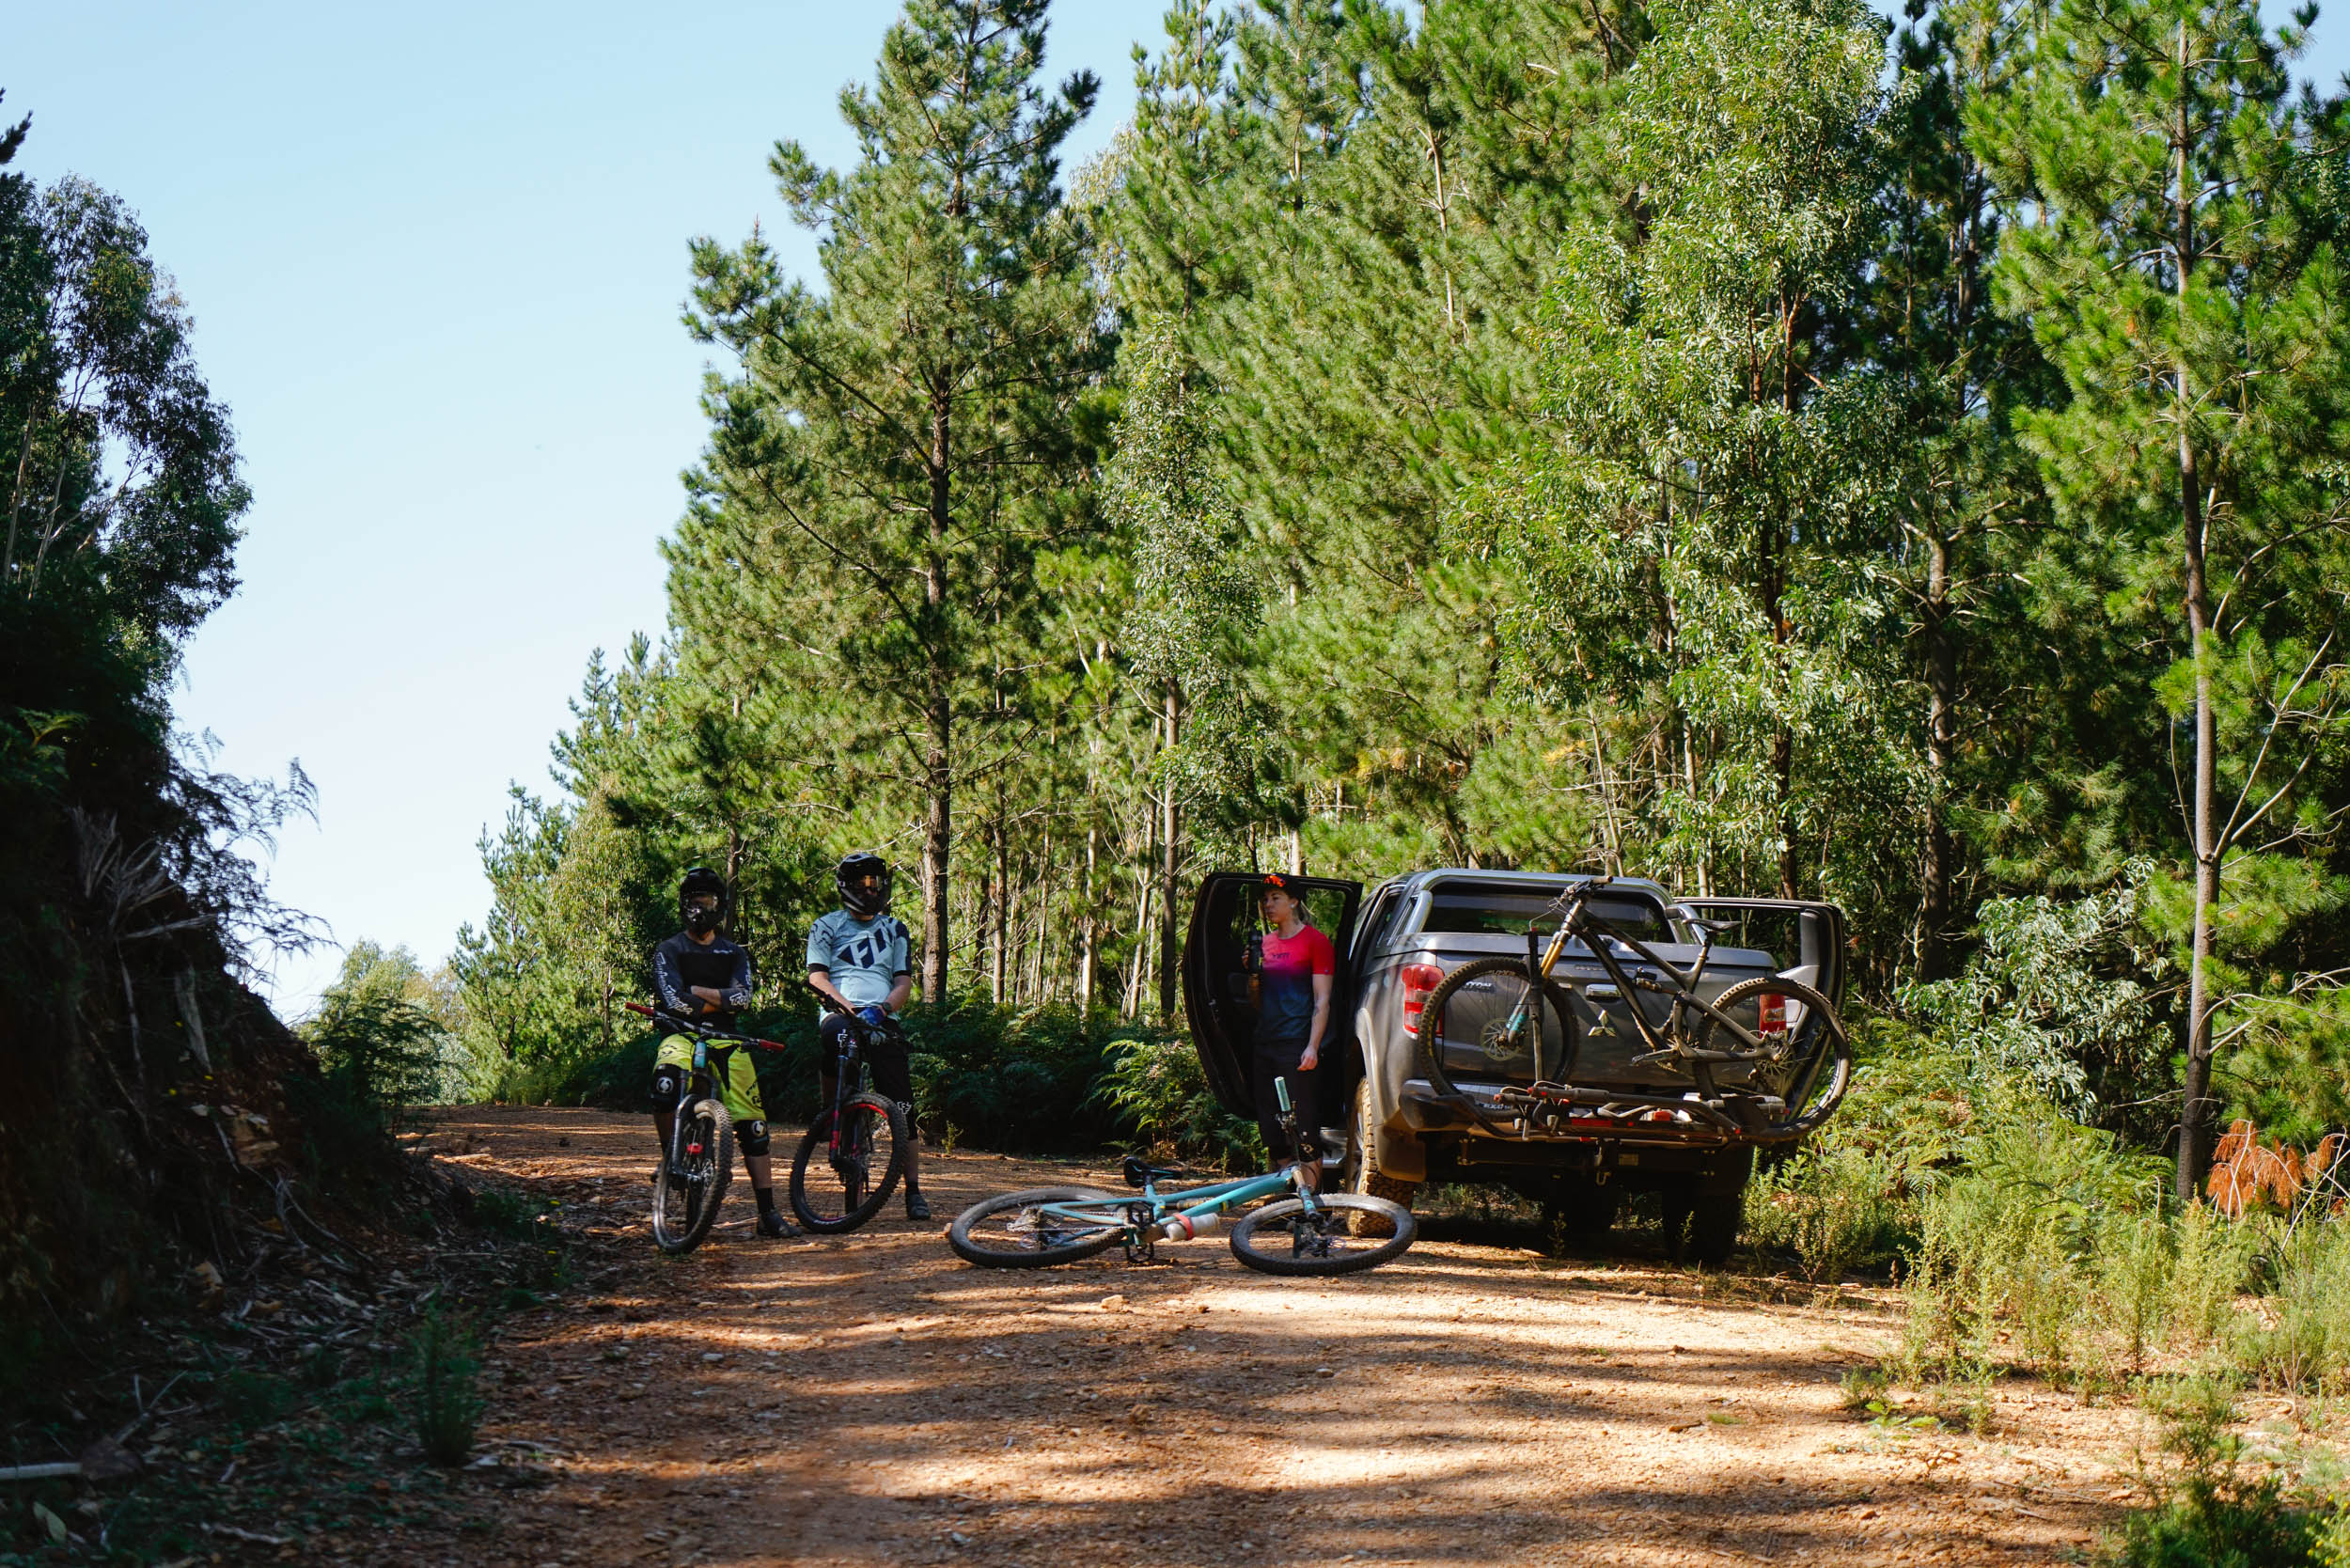 Taking a break at the end of the day with the team. Deep in the pines.